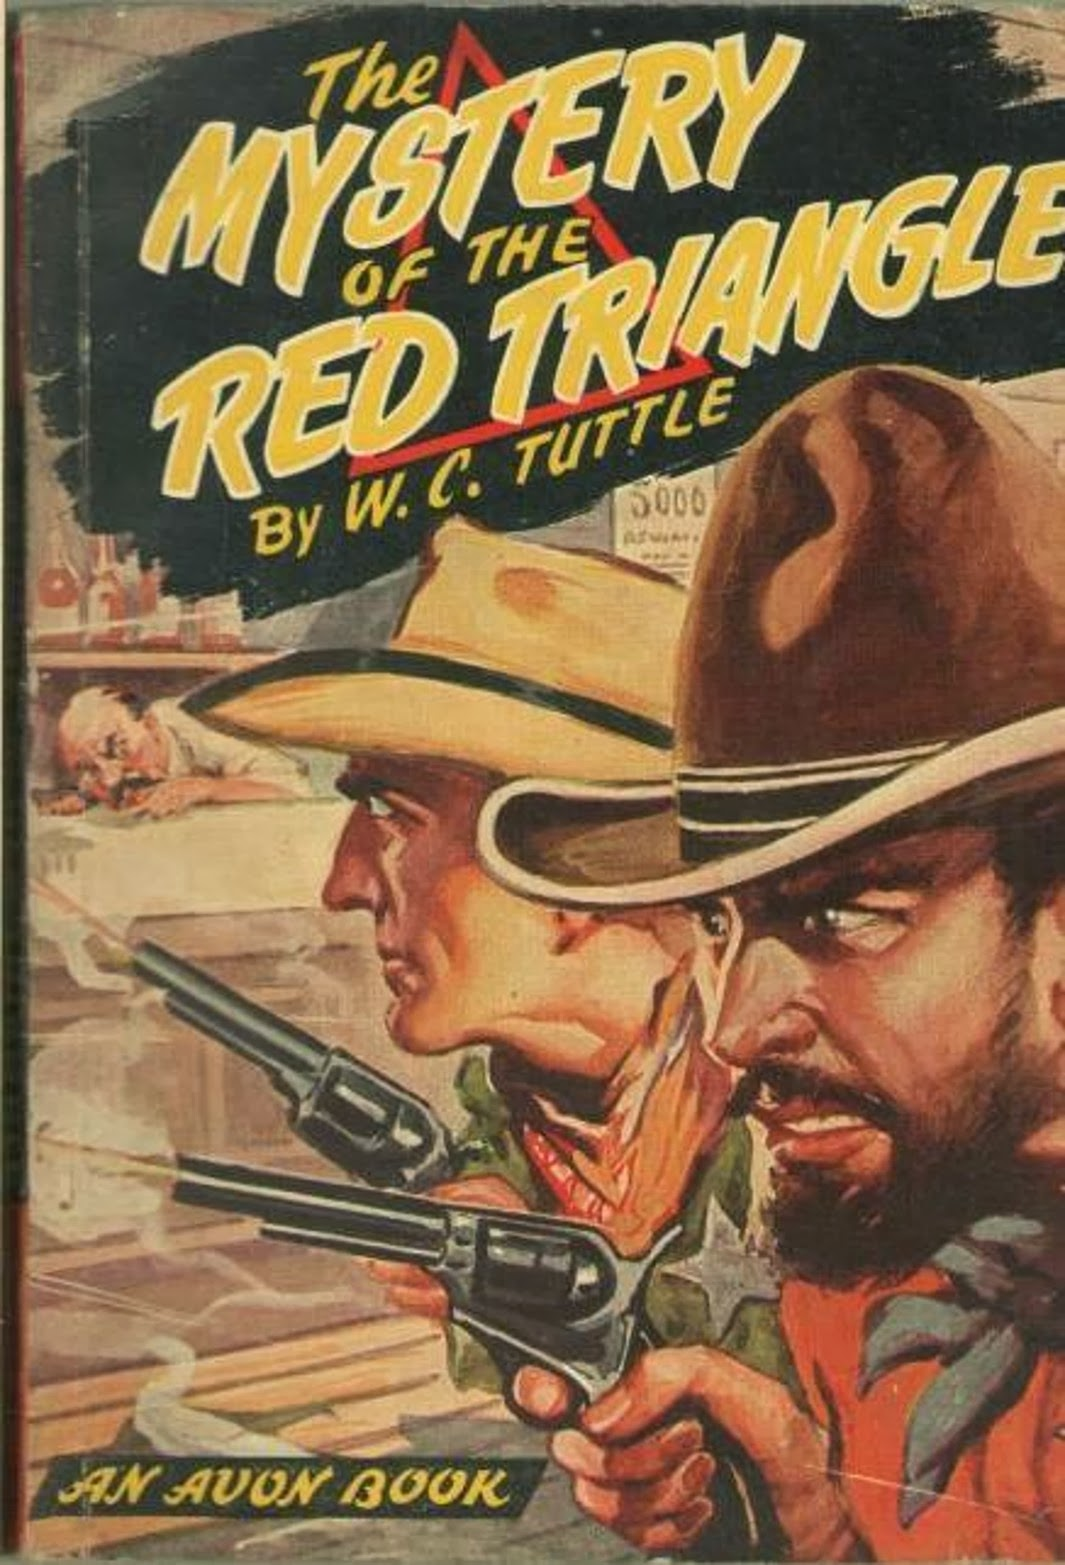 As Usual In These Novels, Author Wc Tuttle Spends The First Quarter Of  The Book Setting